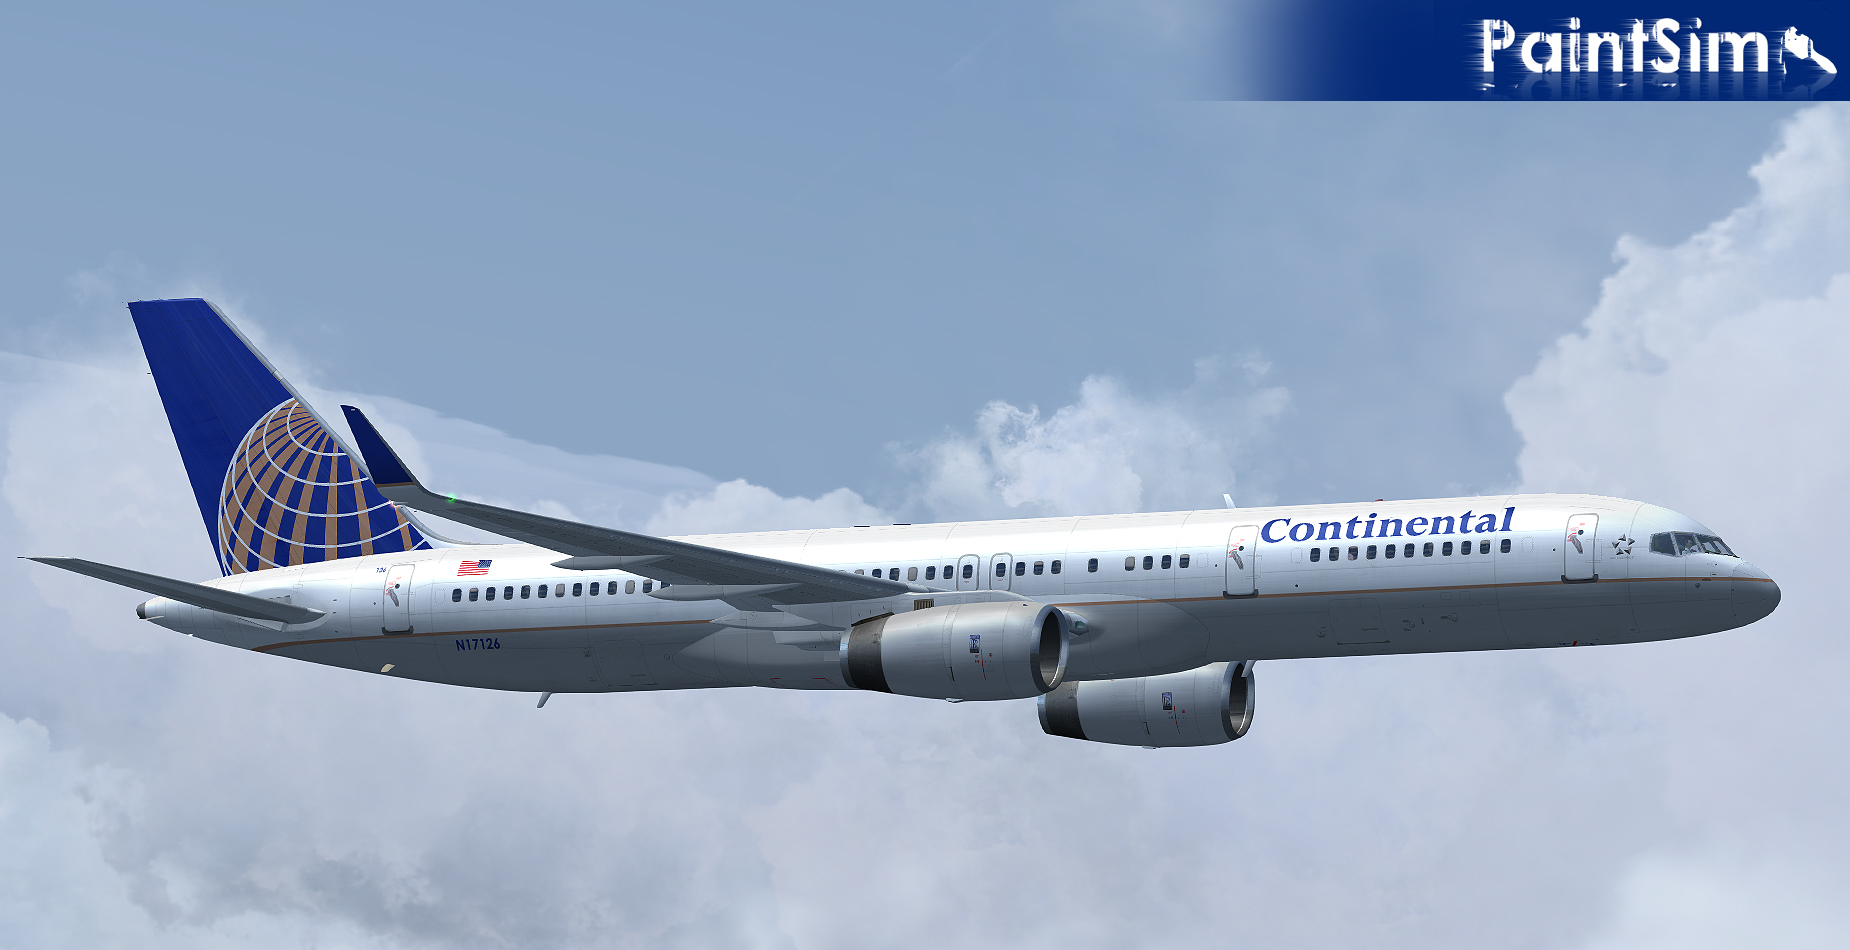 PAINTSIM - HD TEXTURE PACK 3 FOR CAPTAIN SIM BOEING 757-200 FS2004